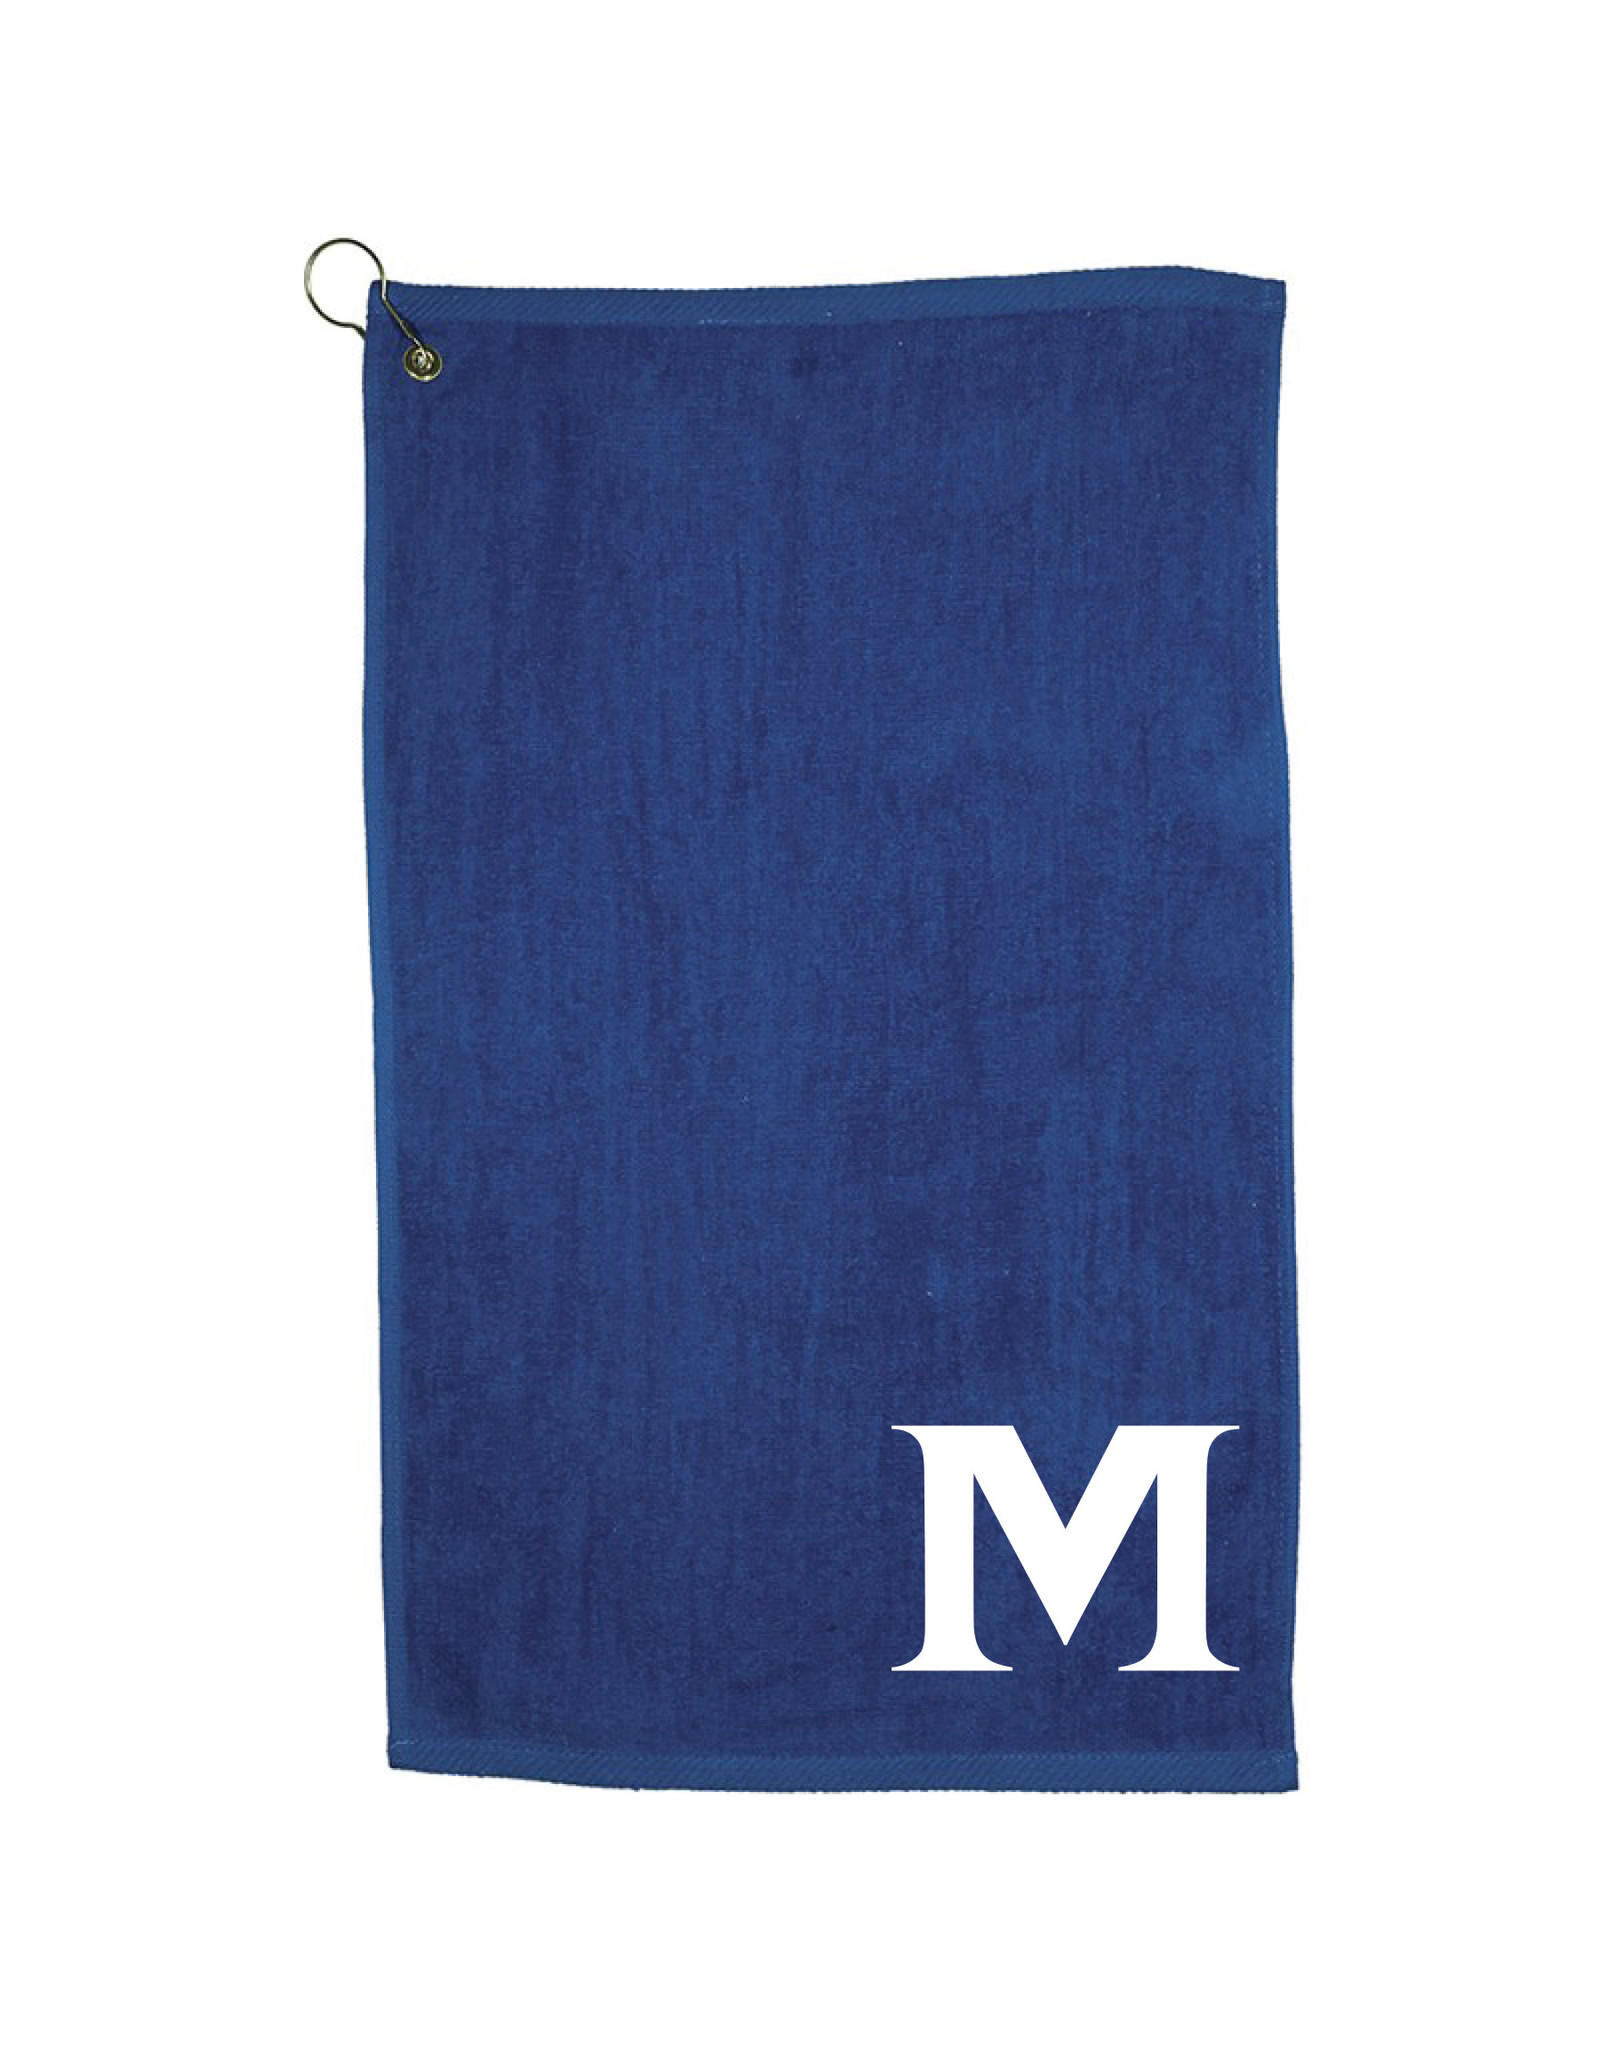 GOLF TOWEL WITH HOOK